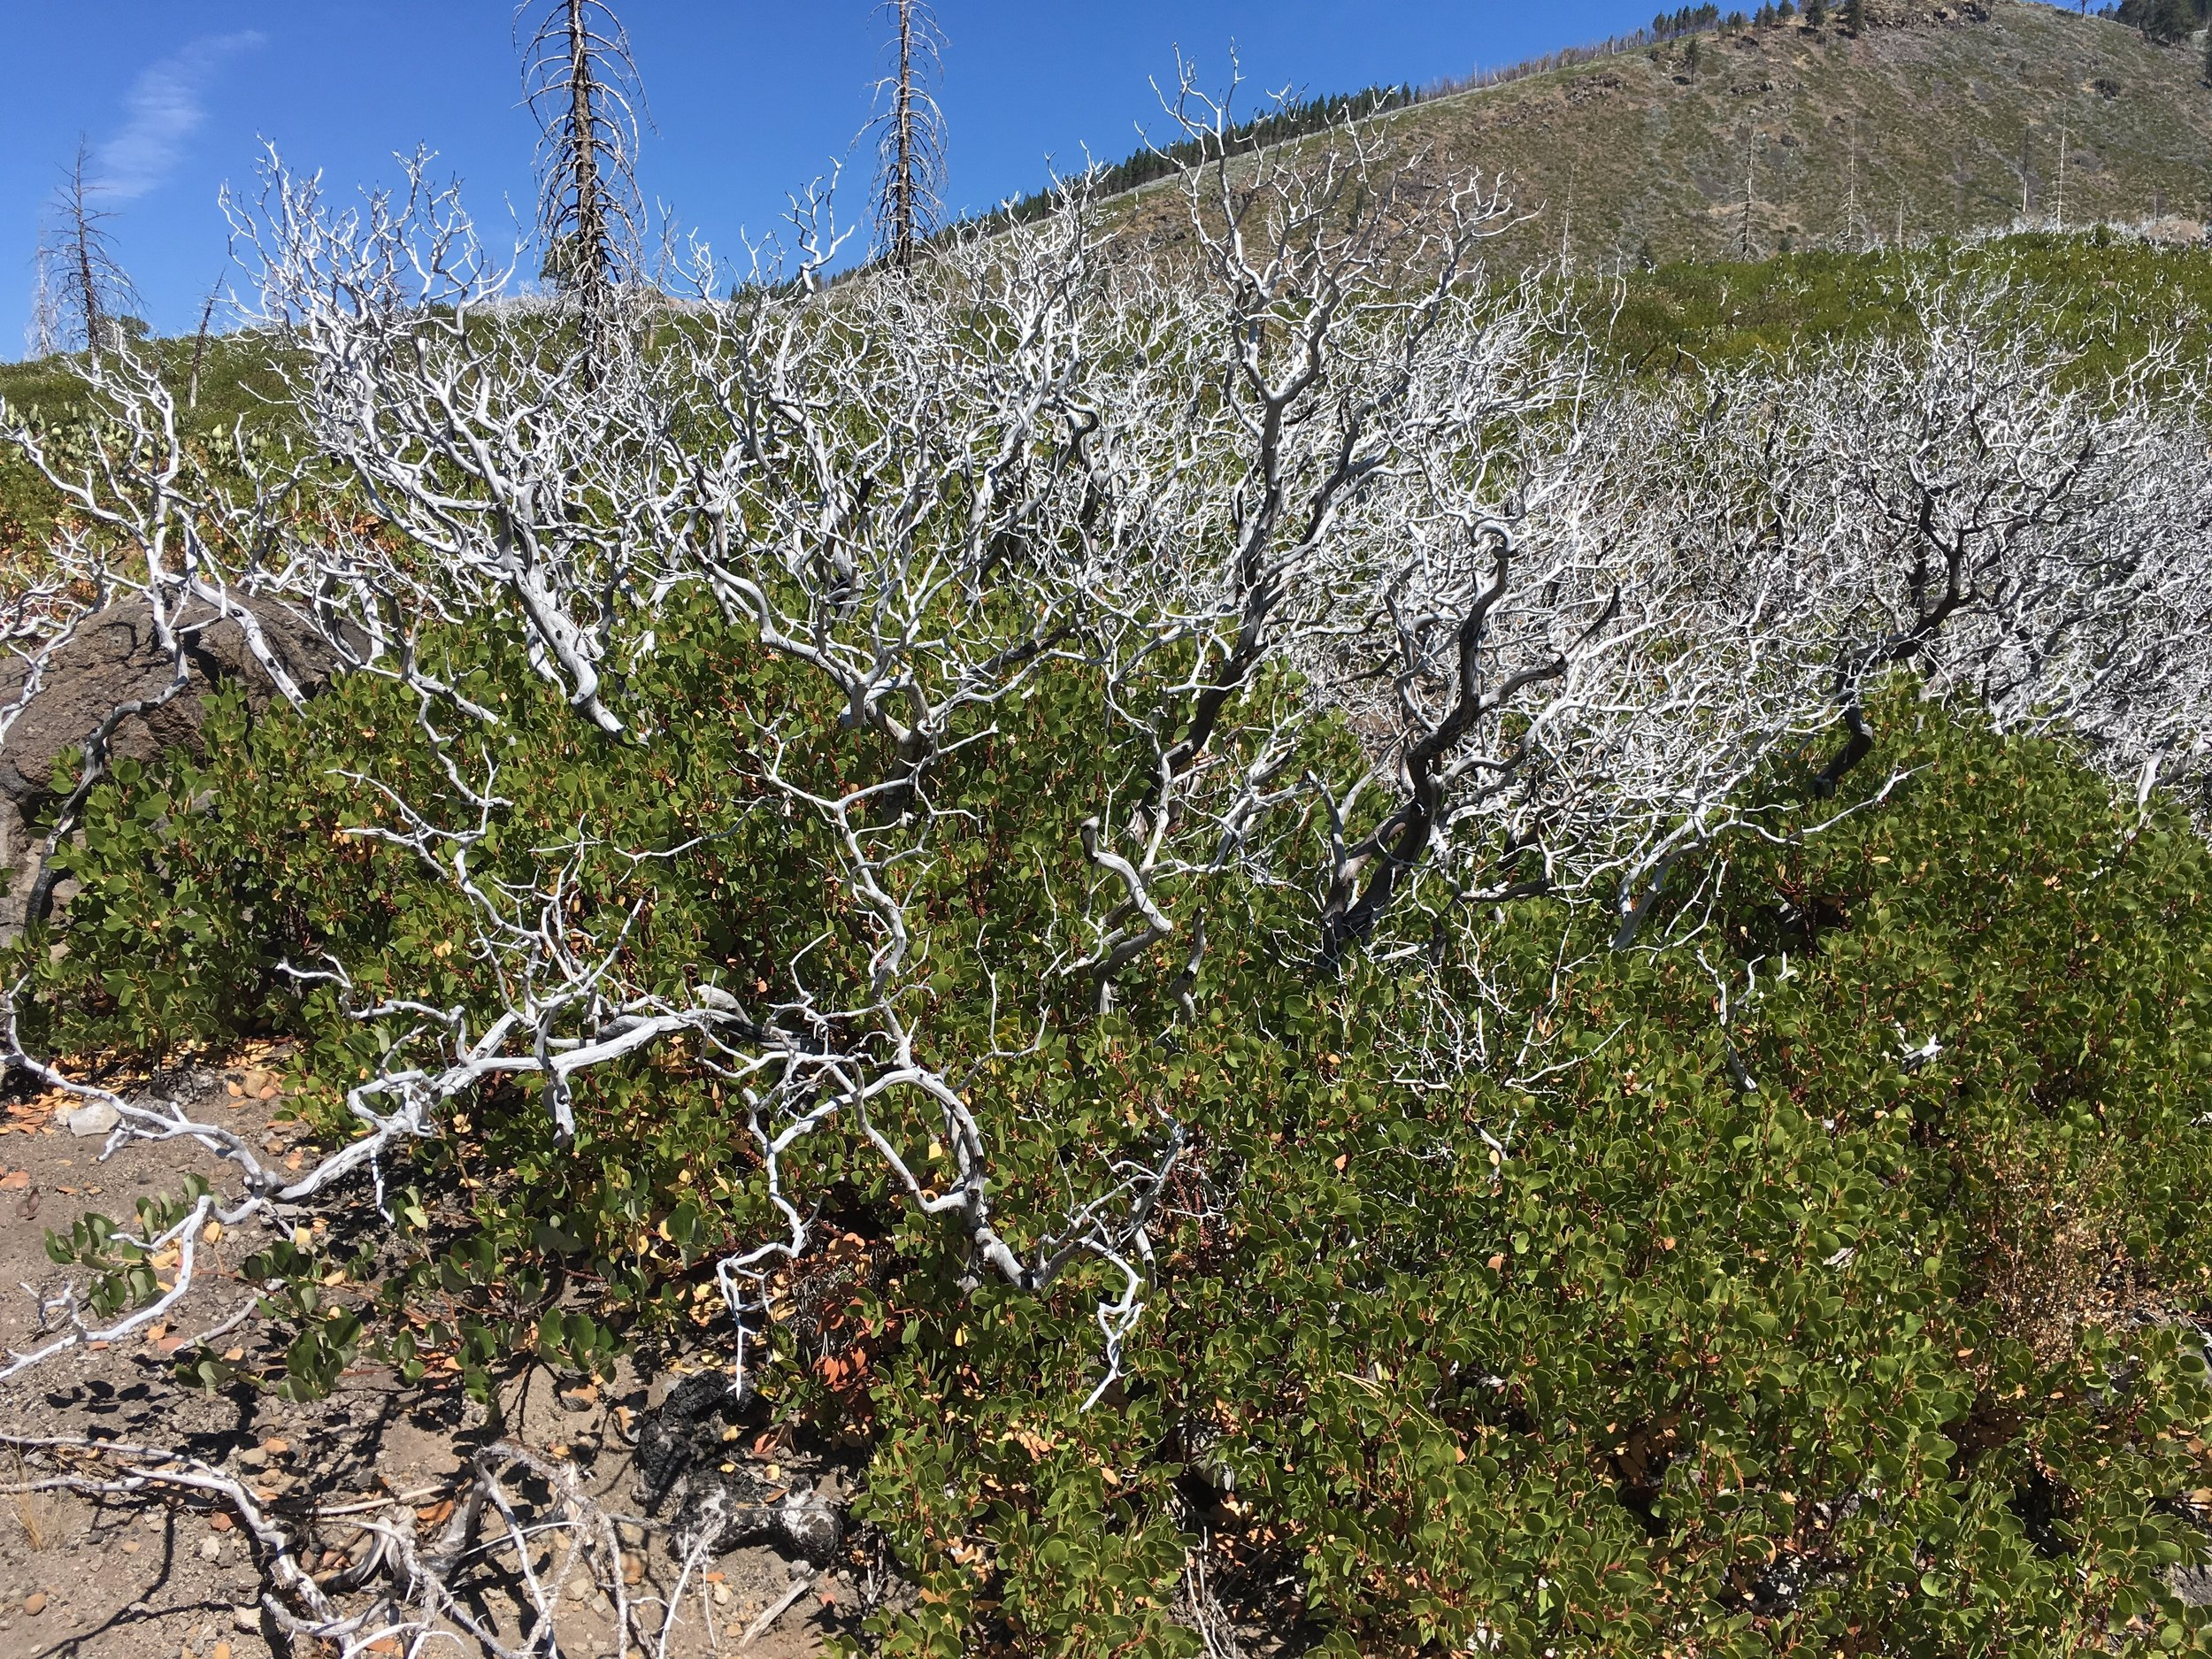 Manzanita skeletons being overtaken by new growth.